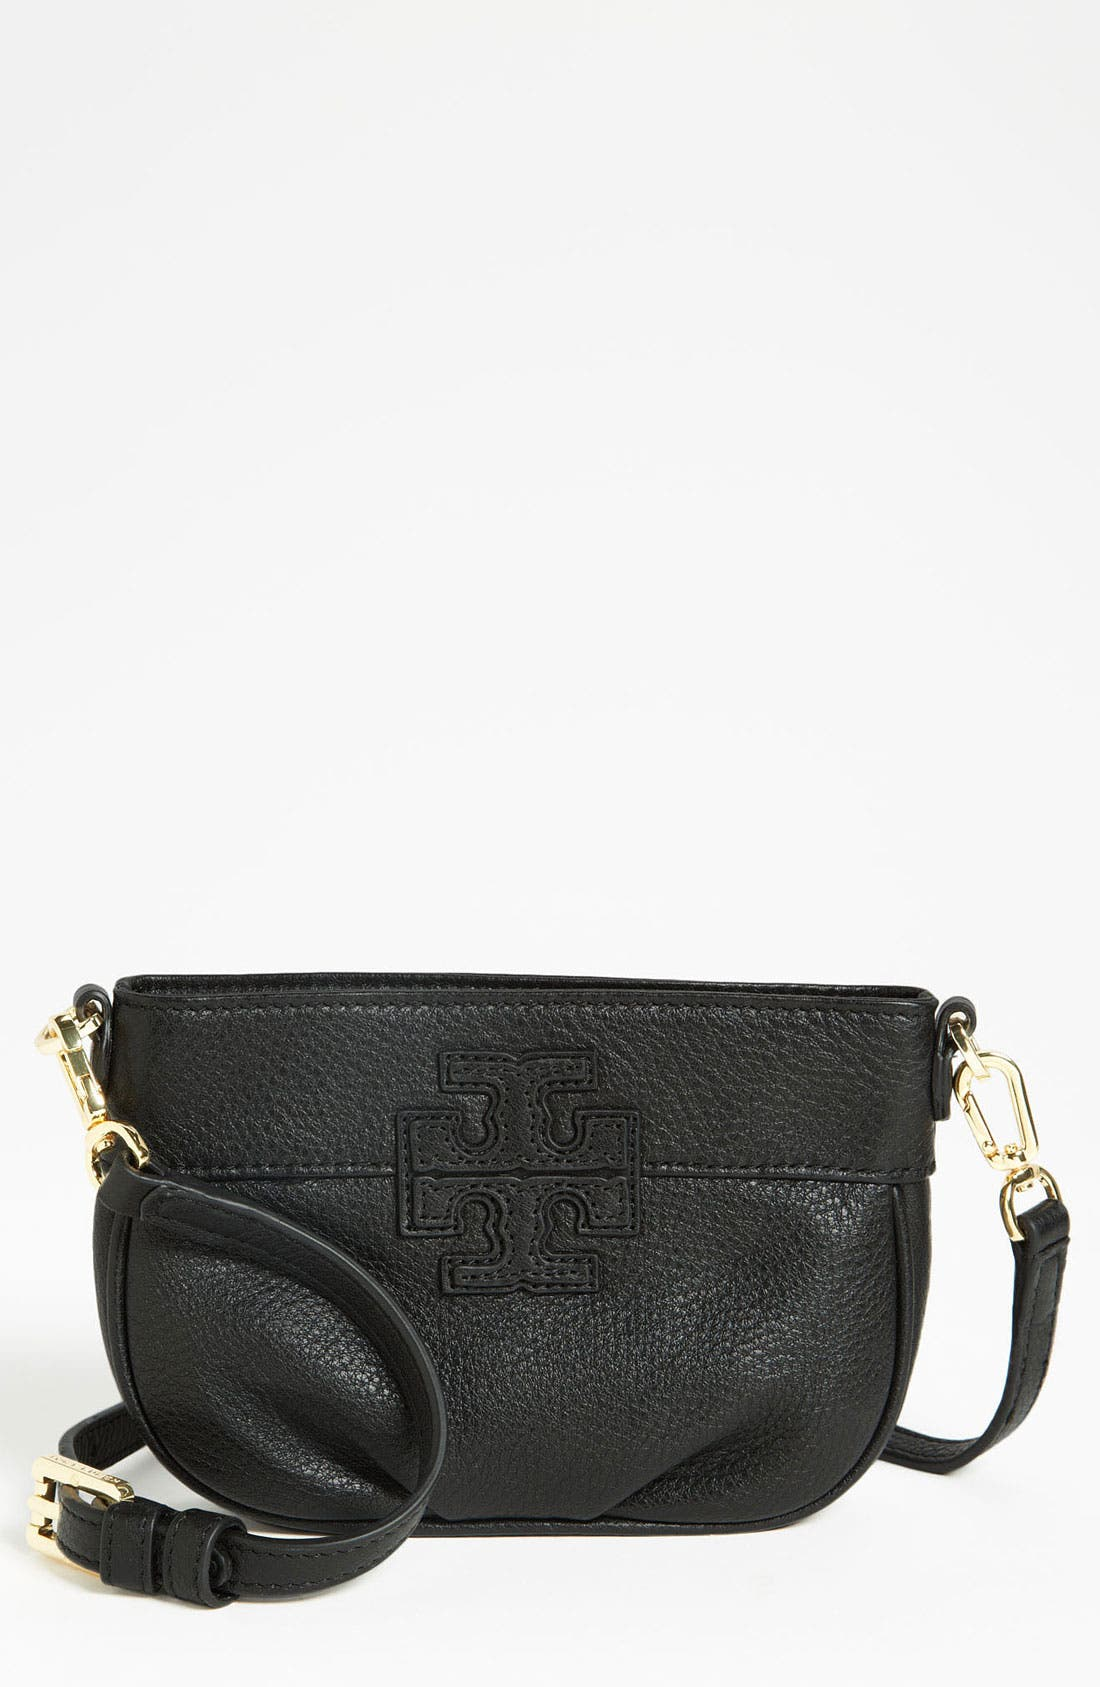 Main Image - Tory Burch 'Stacked T' Leather Crossbody Bag